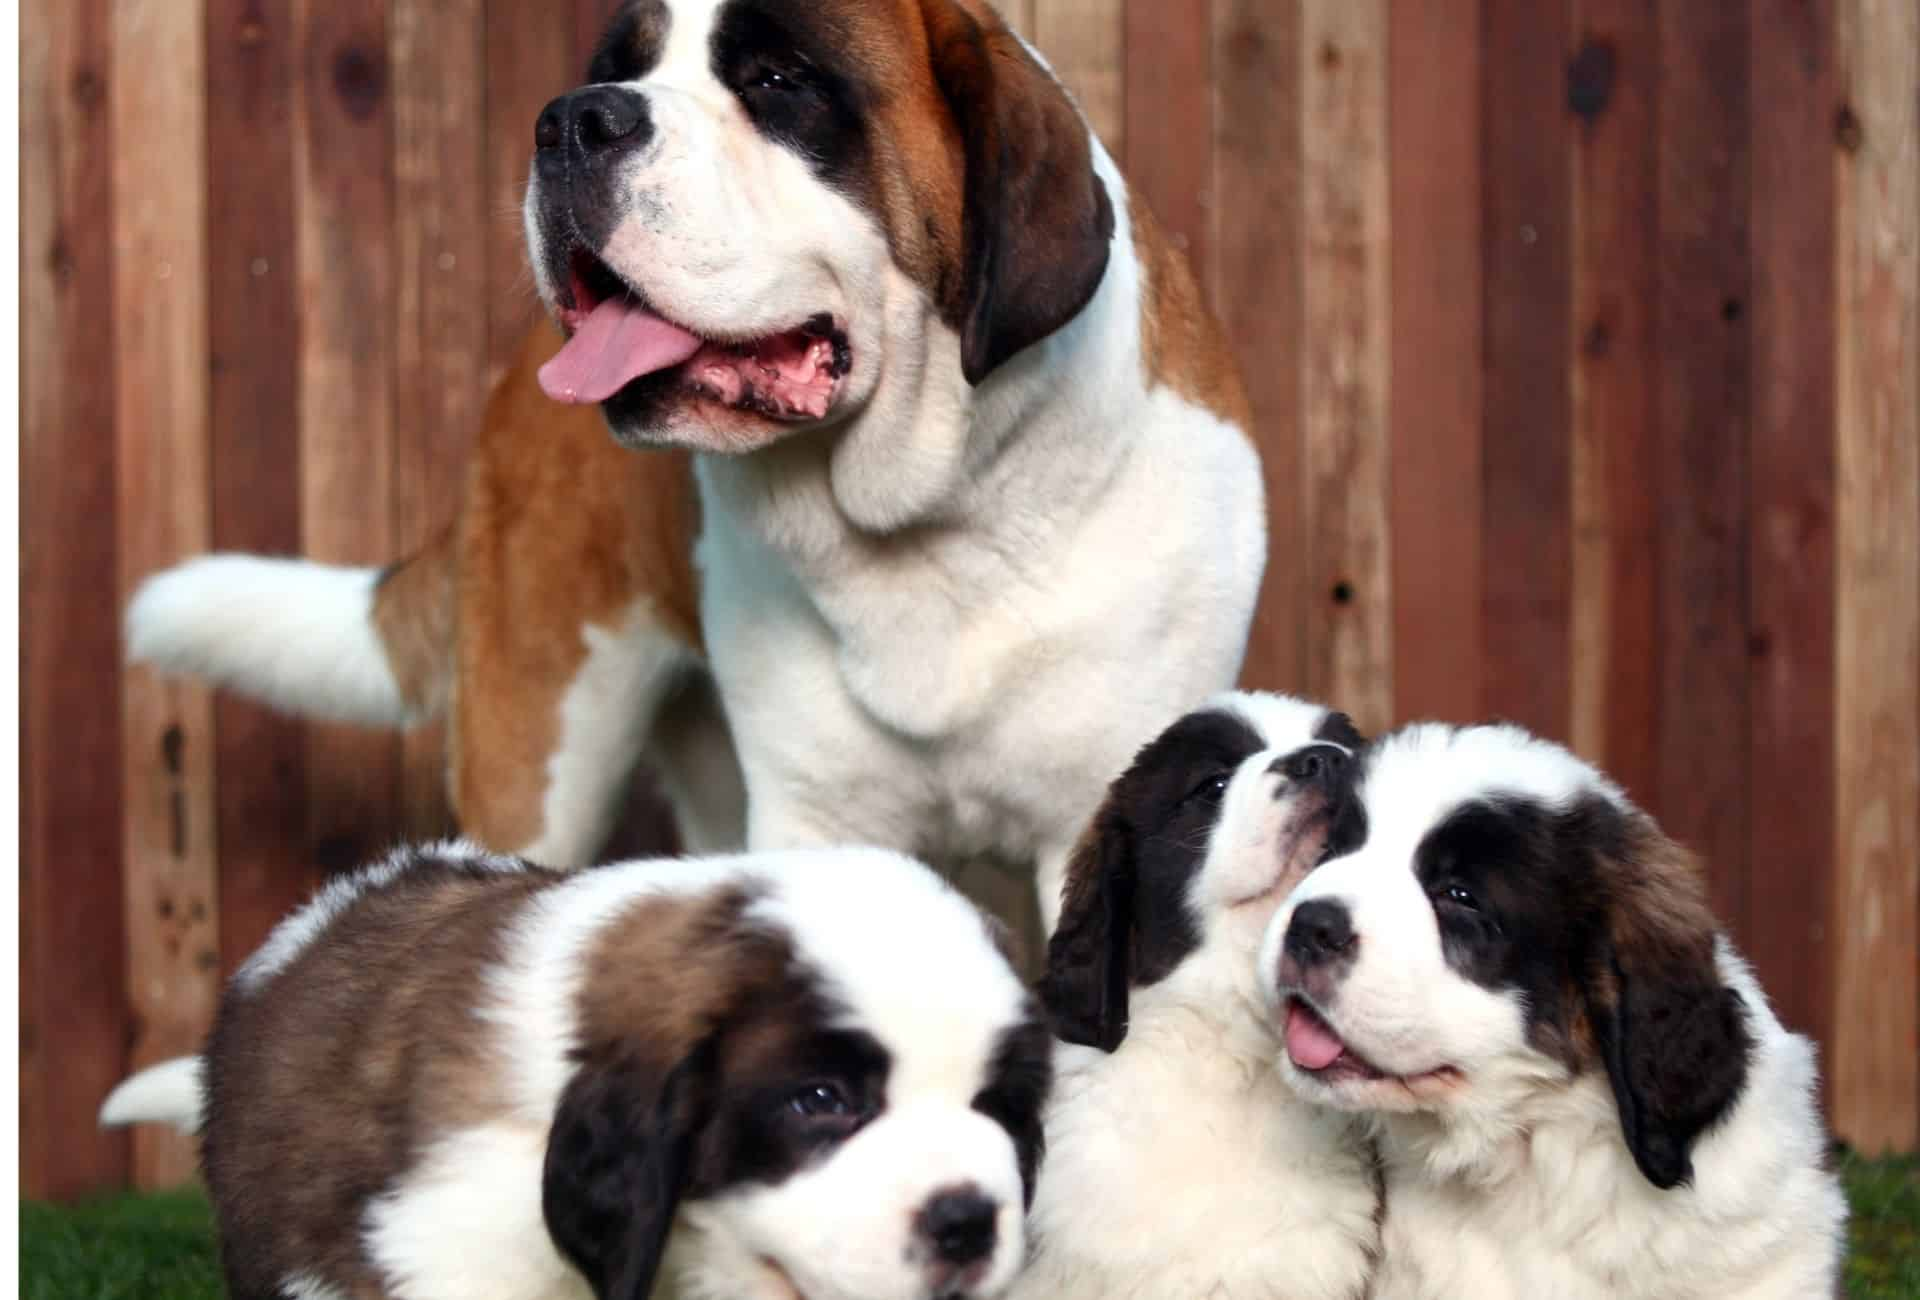 Saint Bernard with thick bones, tail, and a big head with three puppies, all looking like cuddly teddy bears.